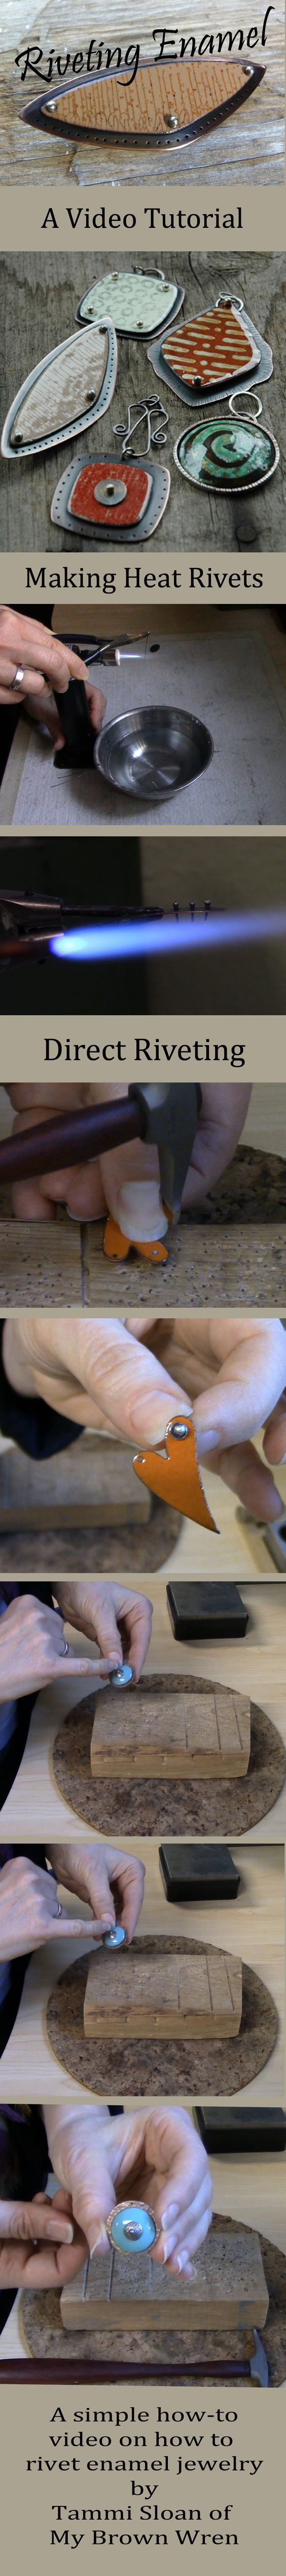 A simple video tutorial on how to safely rivet your enamel jewelry using cold connections and heat rivets: